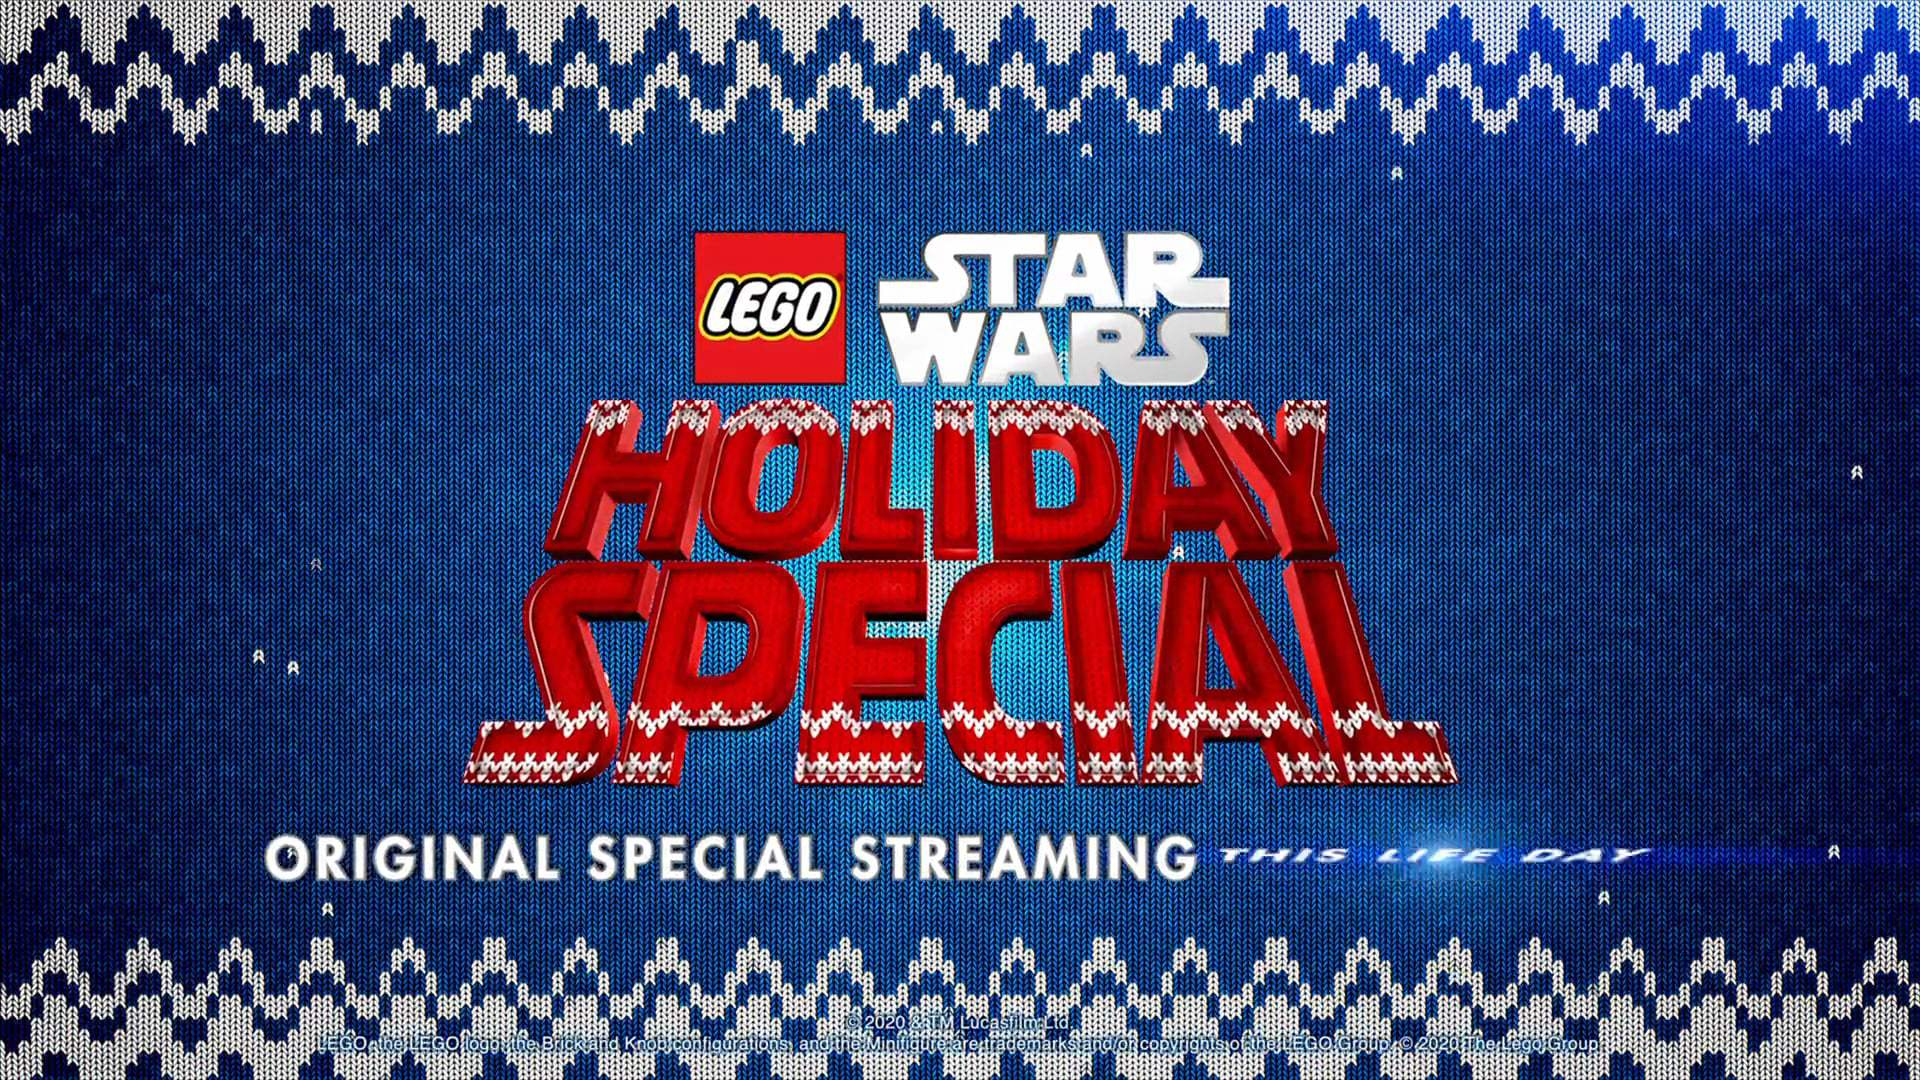 The Lego Star Wars Holiday Special Trailer (2020) Screen Capture #4